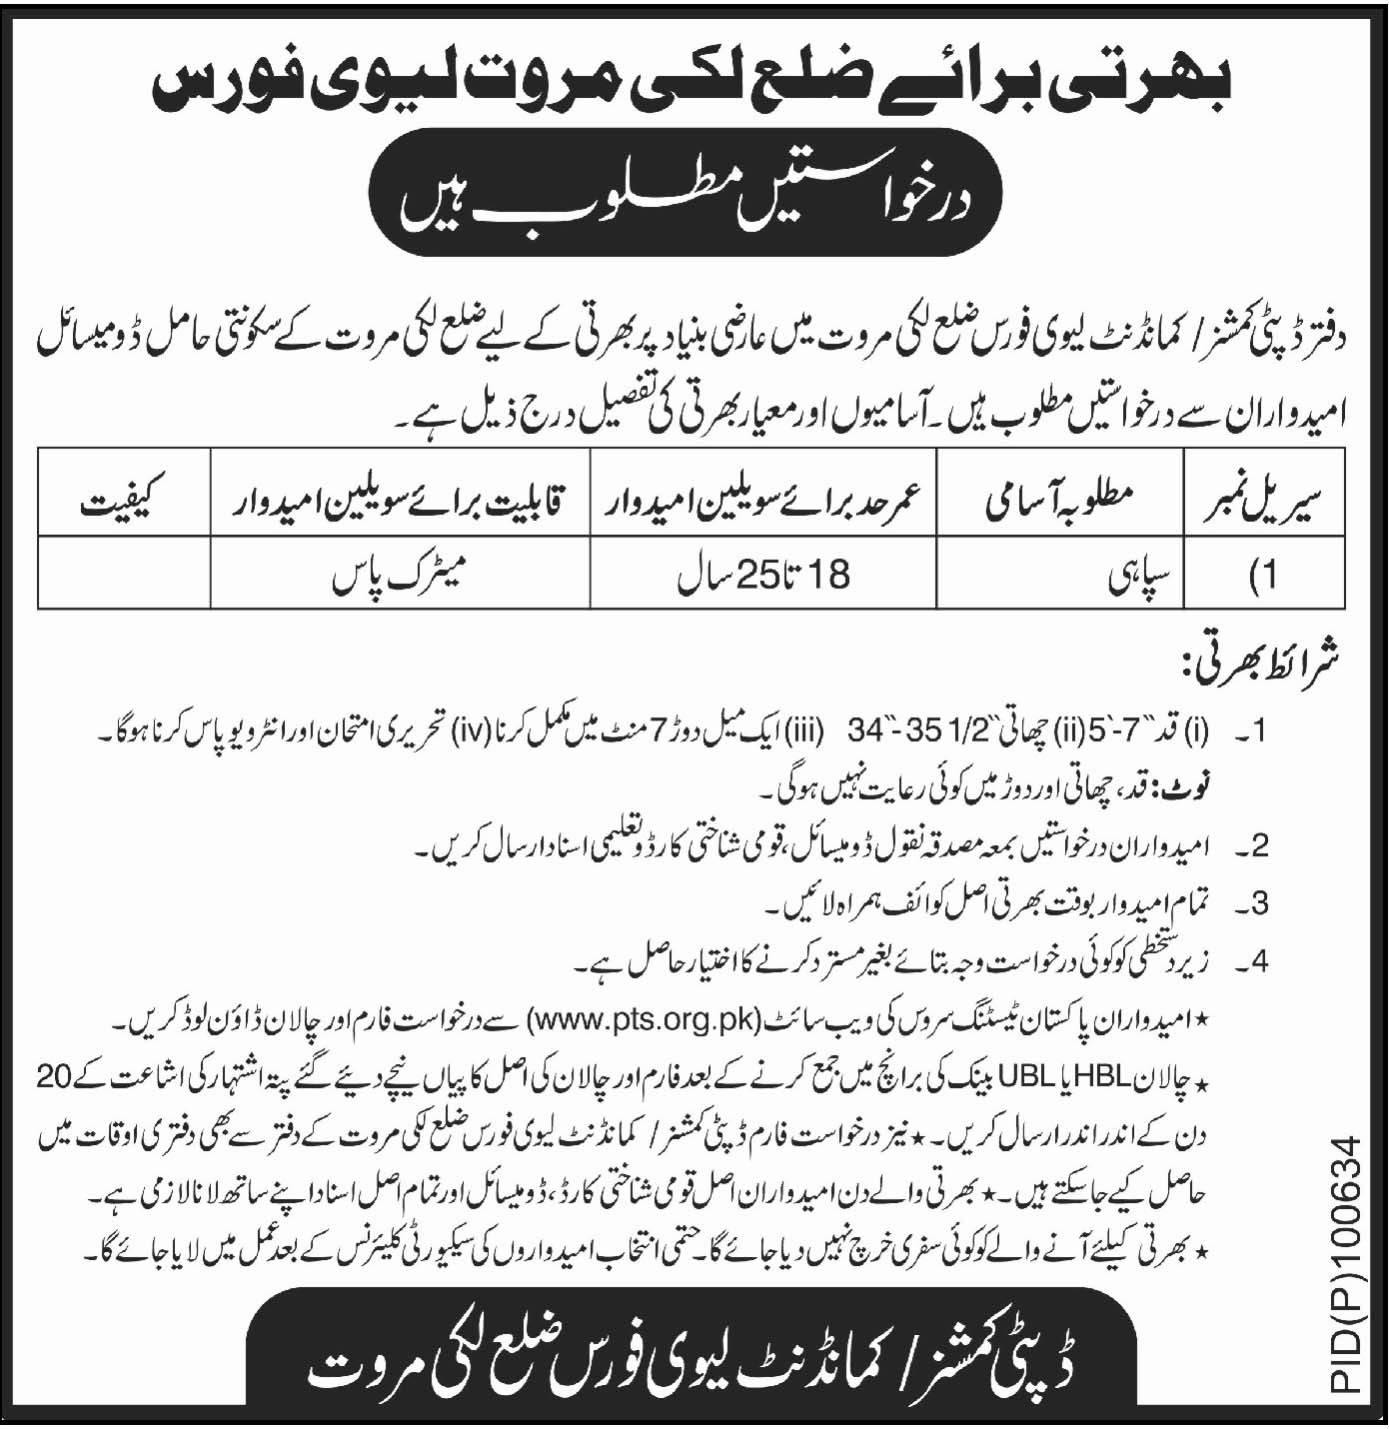 Levis Force Lakki Marwat PTS Jobs 2019 Download Application Form